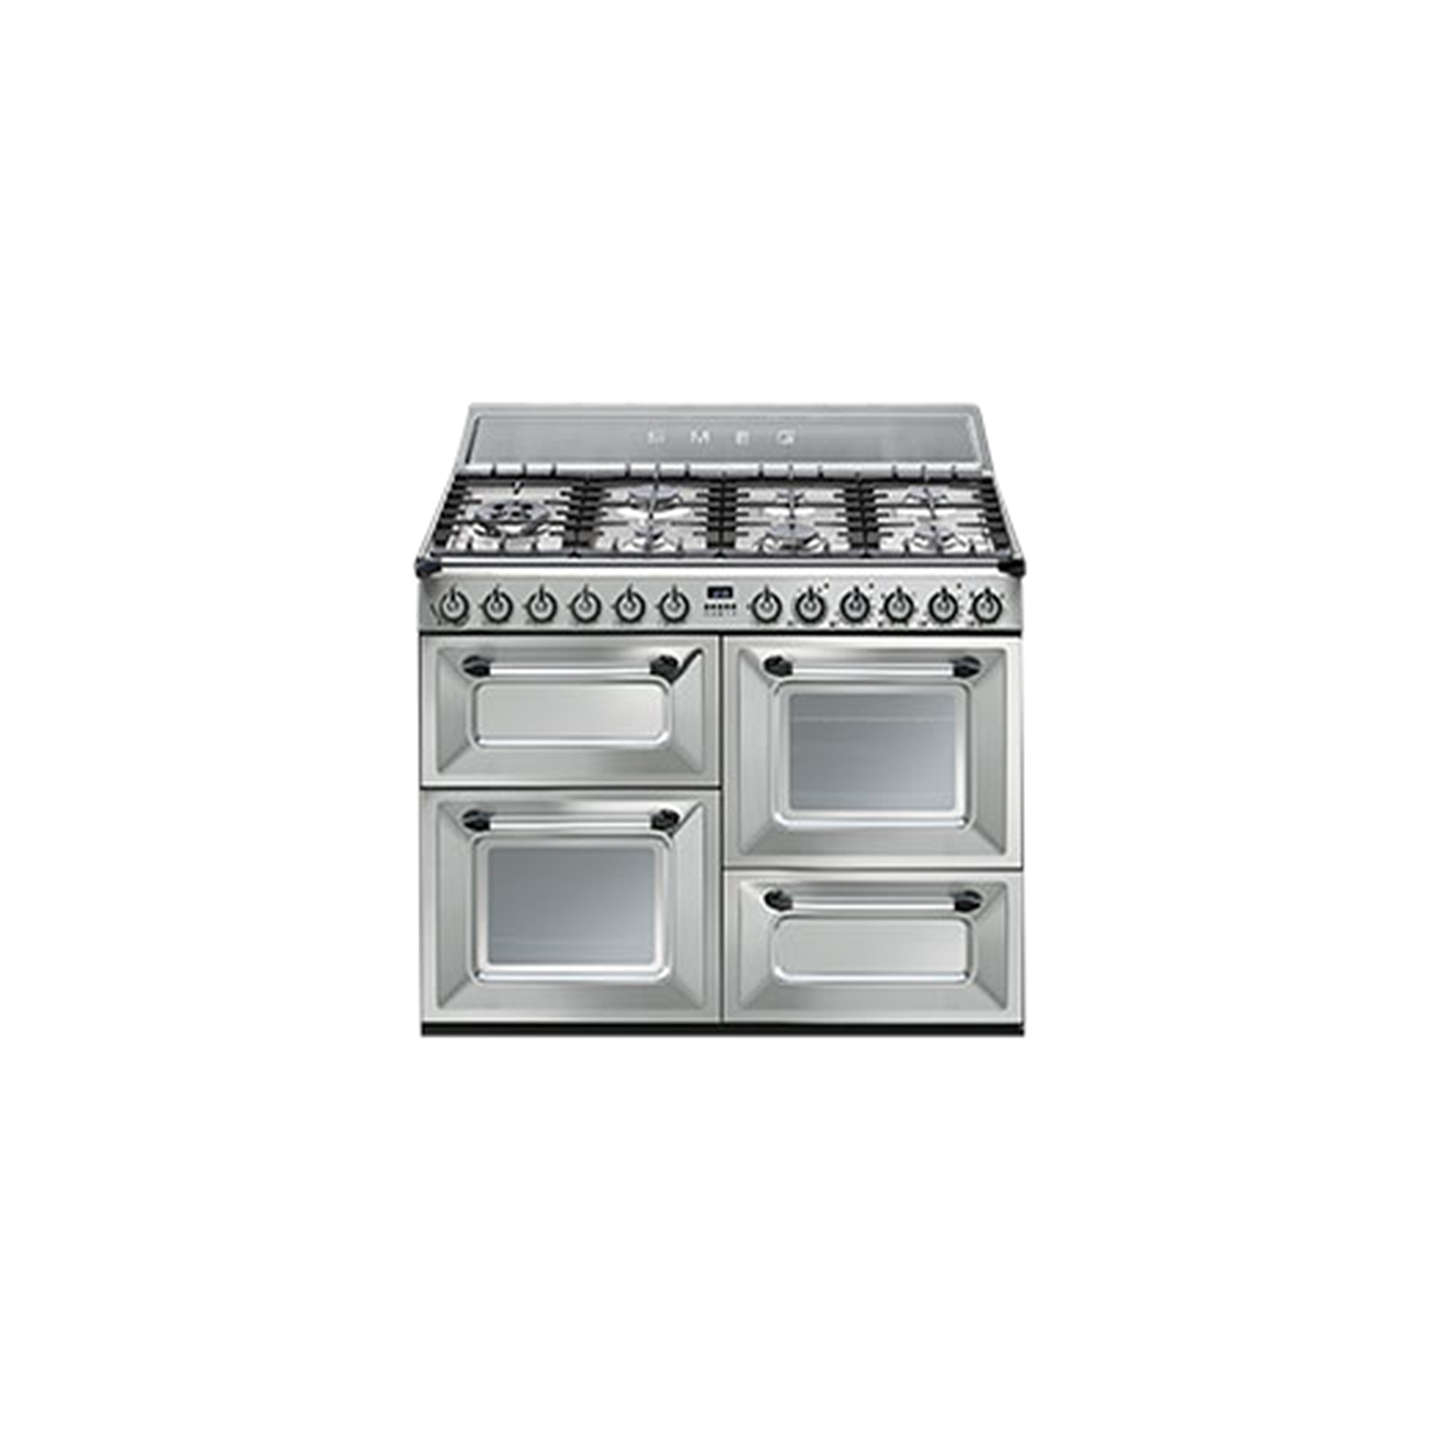 BuySmeg TR4110X Duel Fuel Range Cooker, Stainless Steel Online at johnlewis.com